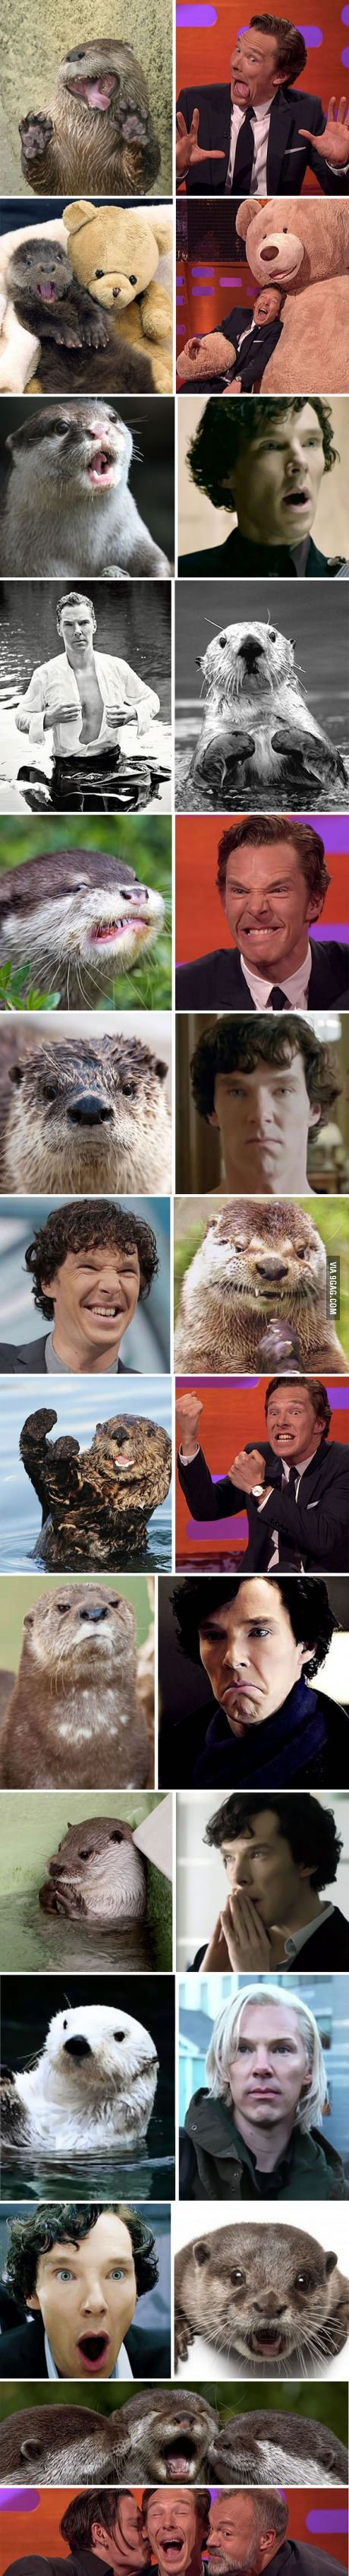 Rumors confirmed: Benedict Cumberbatch is an otter!